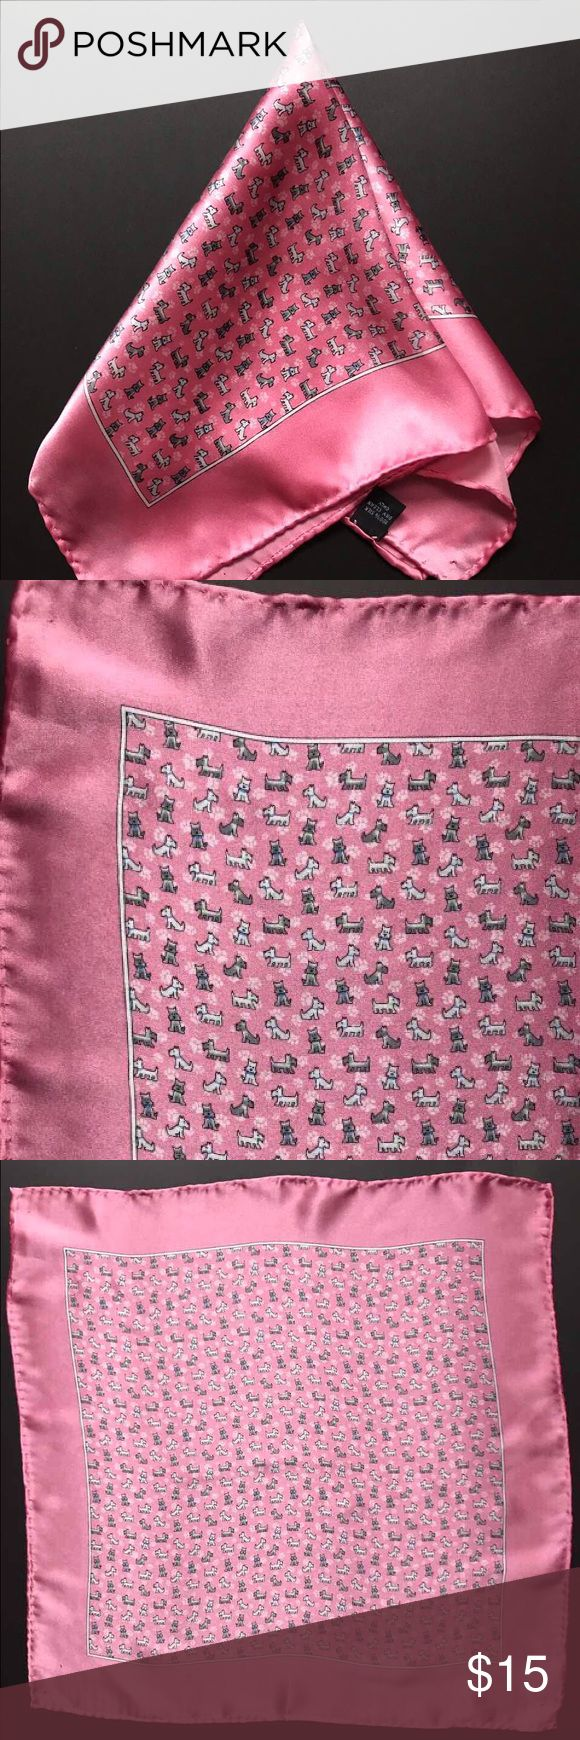 "New silk light pink pocket square 🐶🐶🐶😉 New without tag. 100% silk. Size 15"" 15"" Accessories Pocket Squares"